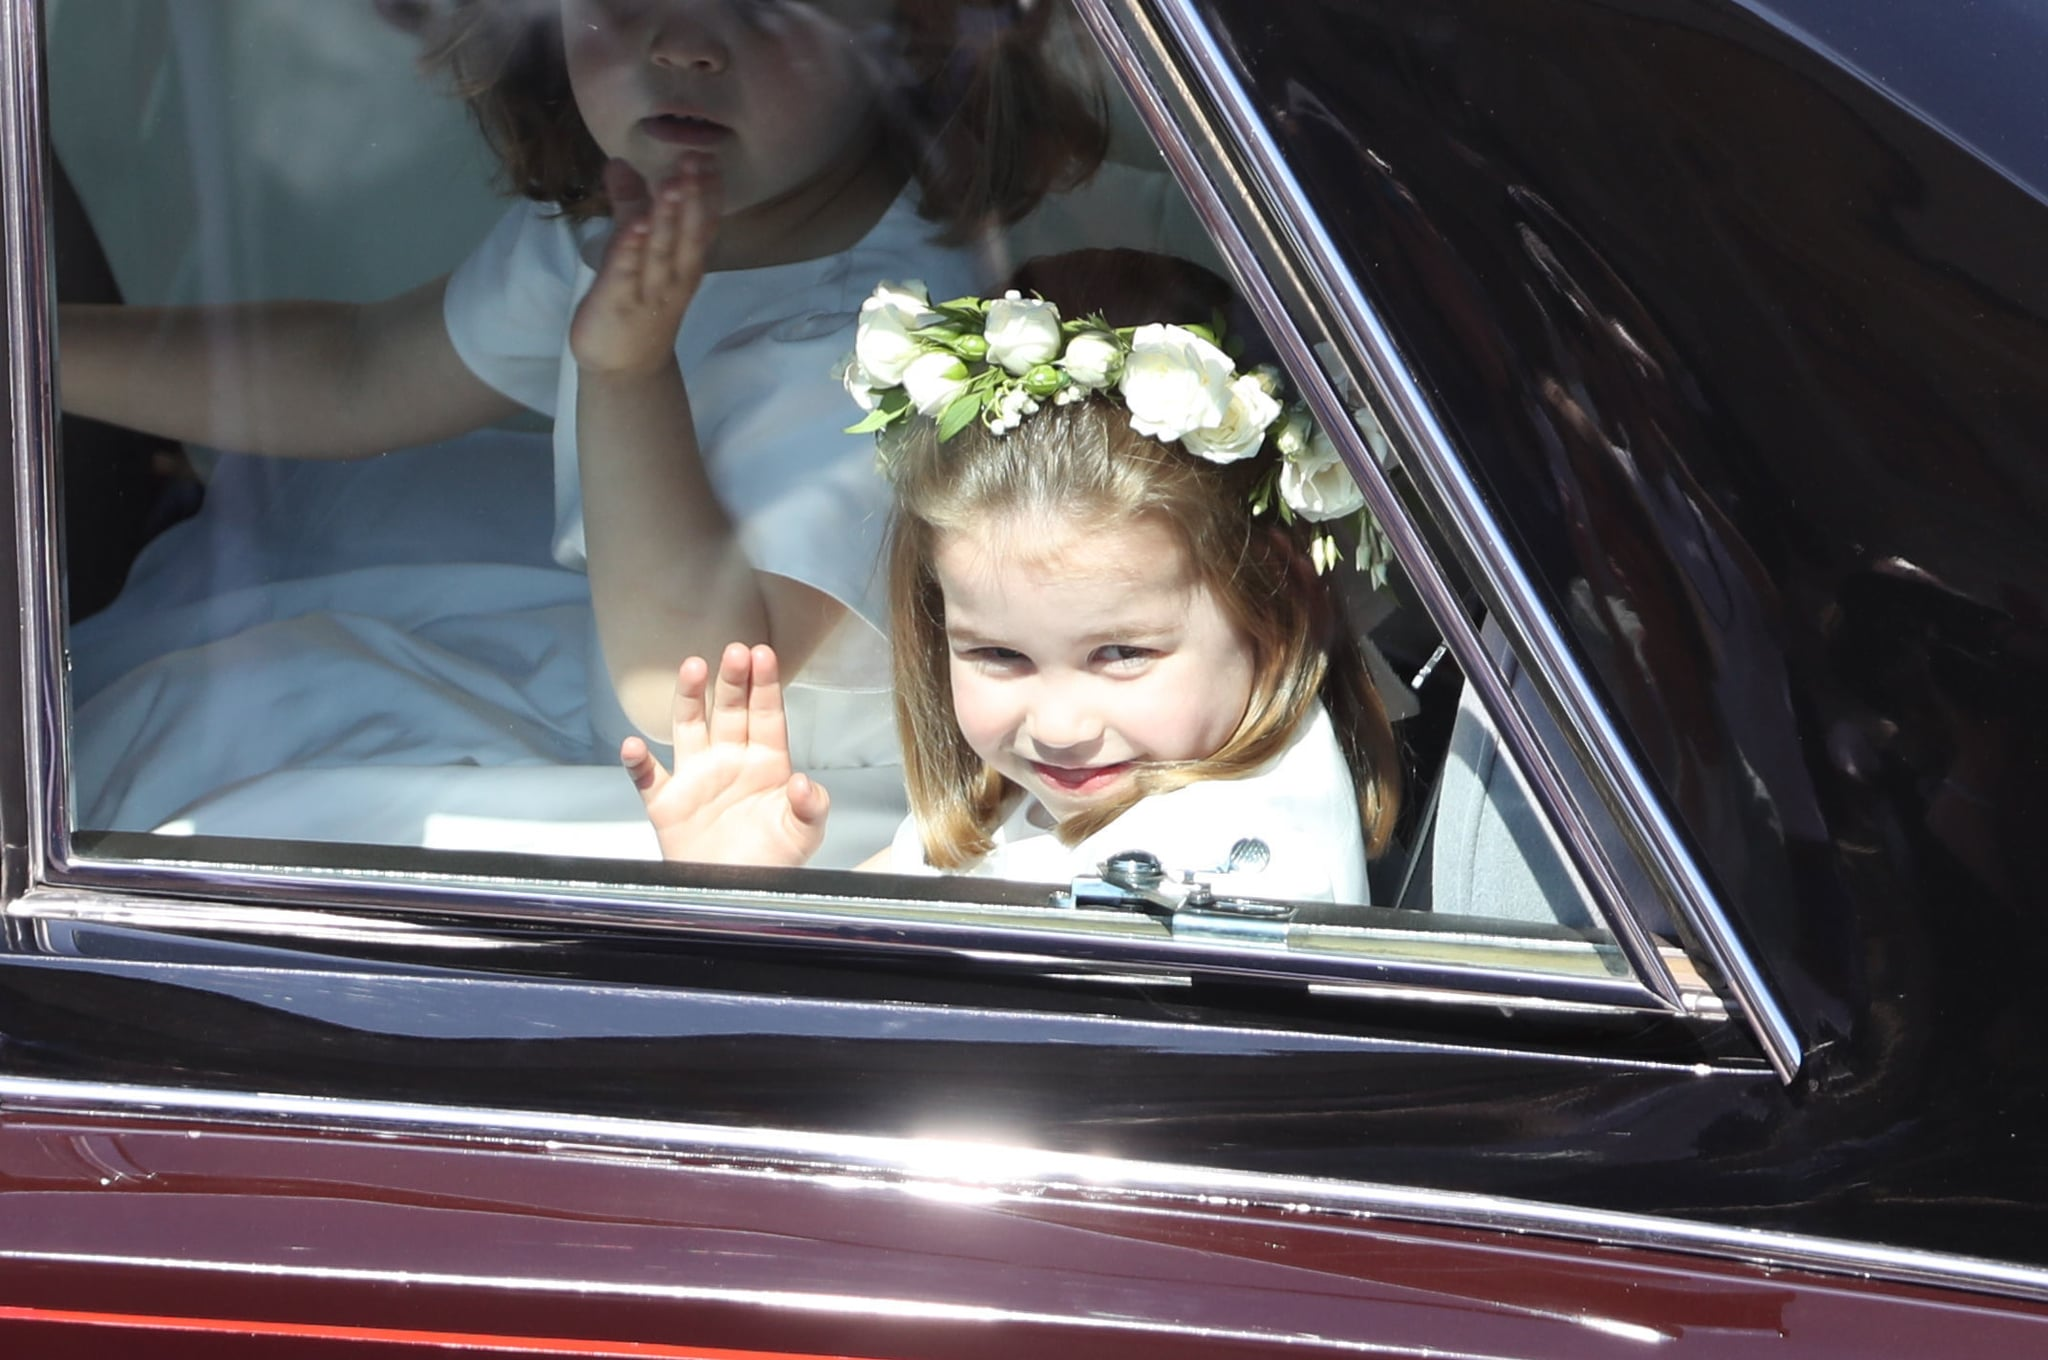 WINDSOR, ENGLAND - MAY 19:  Princess Charlotte waves to the crowd as she rides in a car to the wedding of Prince Harry and Meghan Markle at St George's Chapel in Windsor Castle on May 19, 2018 in Windsor, England.  (Photo by Andrew Milligan - WPA/Getty Images)